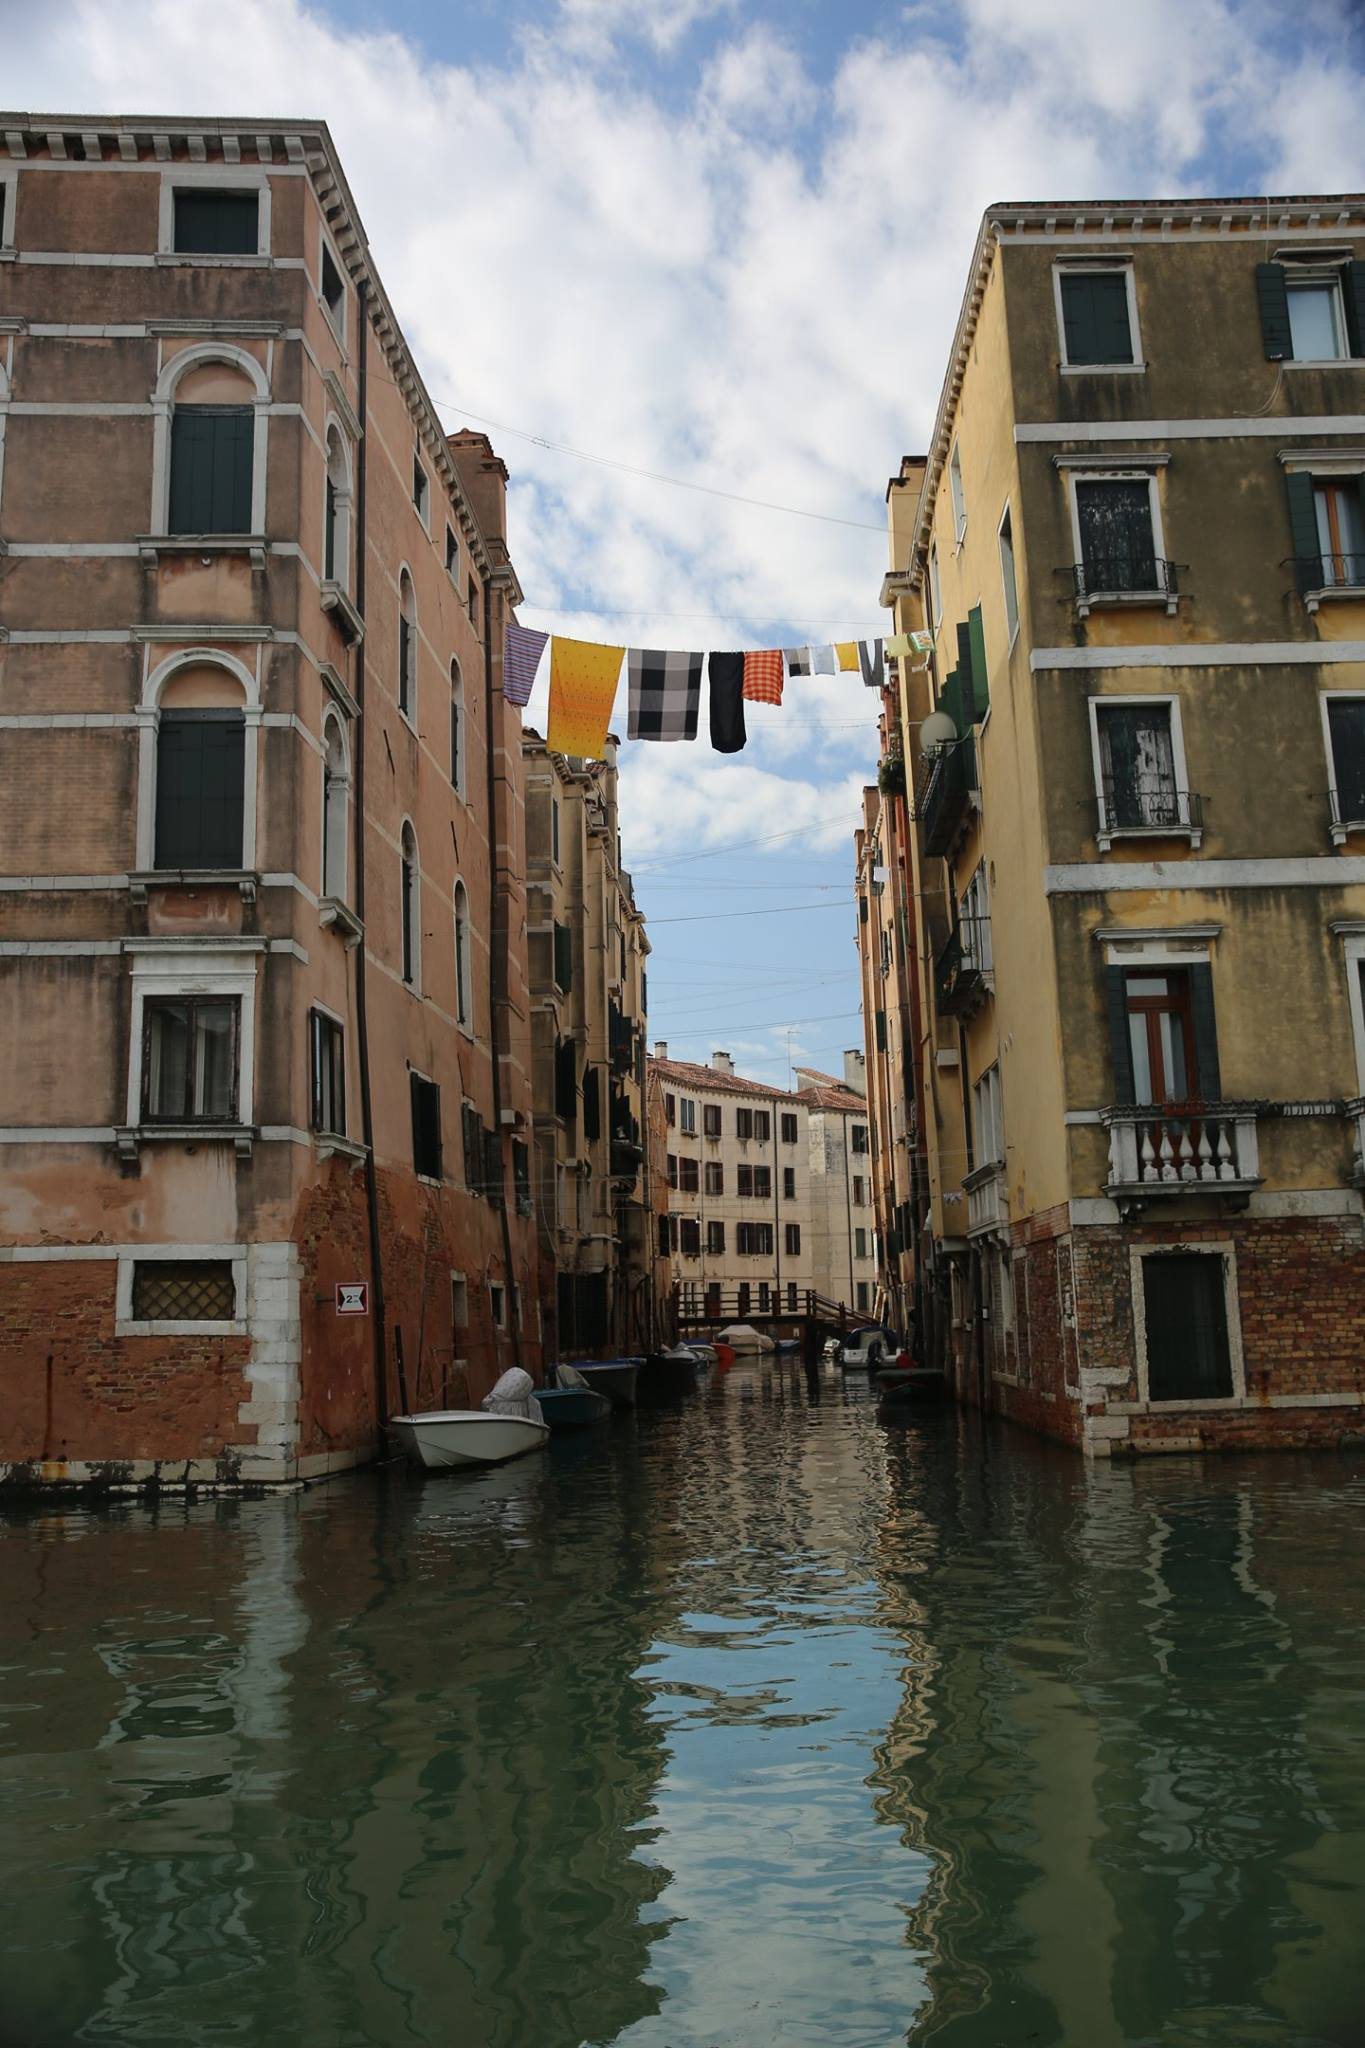 The simple things about Venice are still picture worthy, like this laundry hanging over the still canal